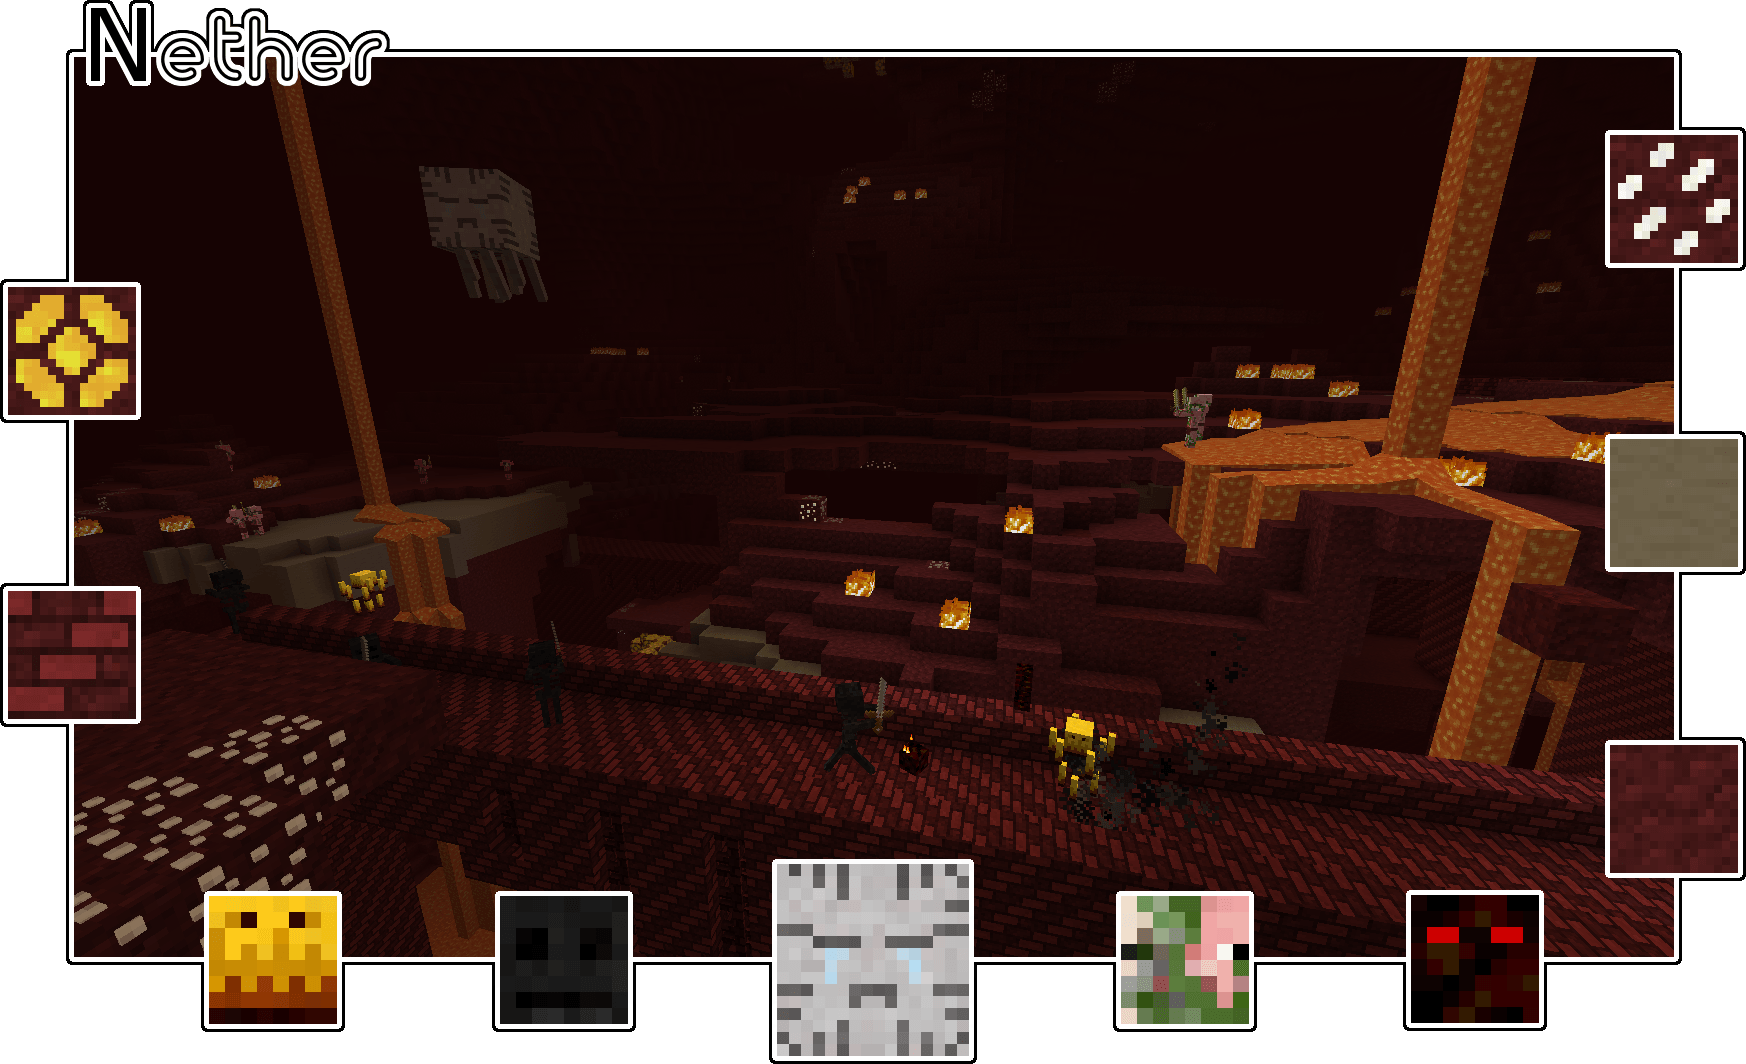 nether-2